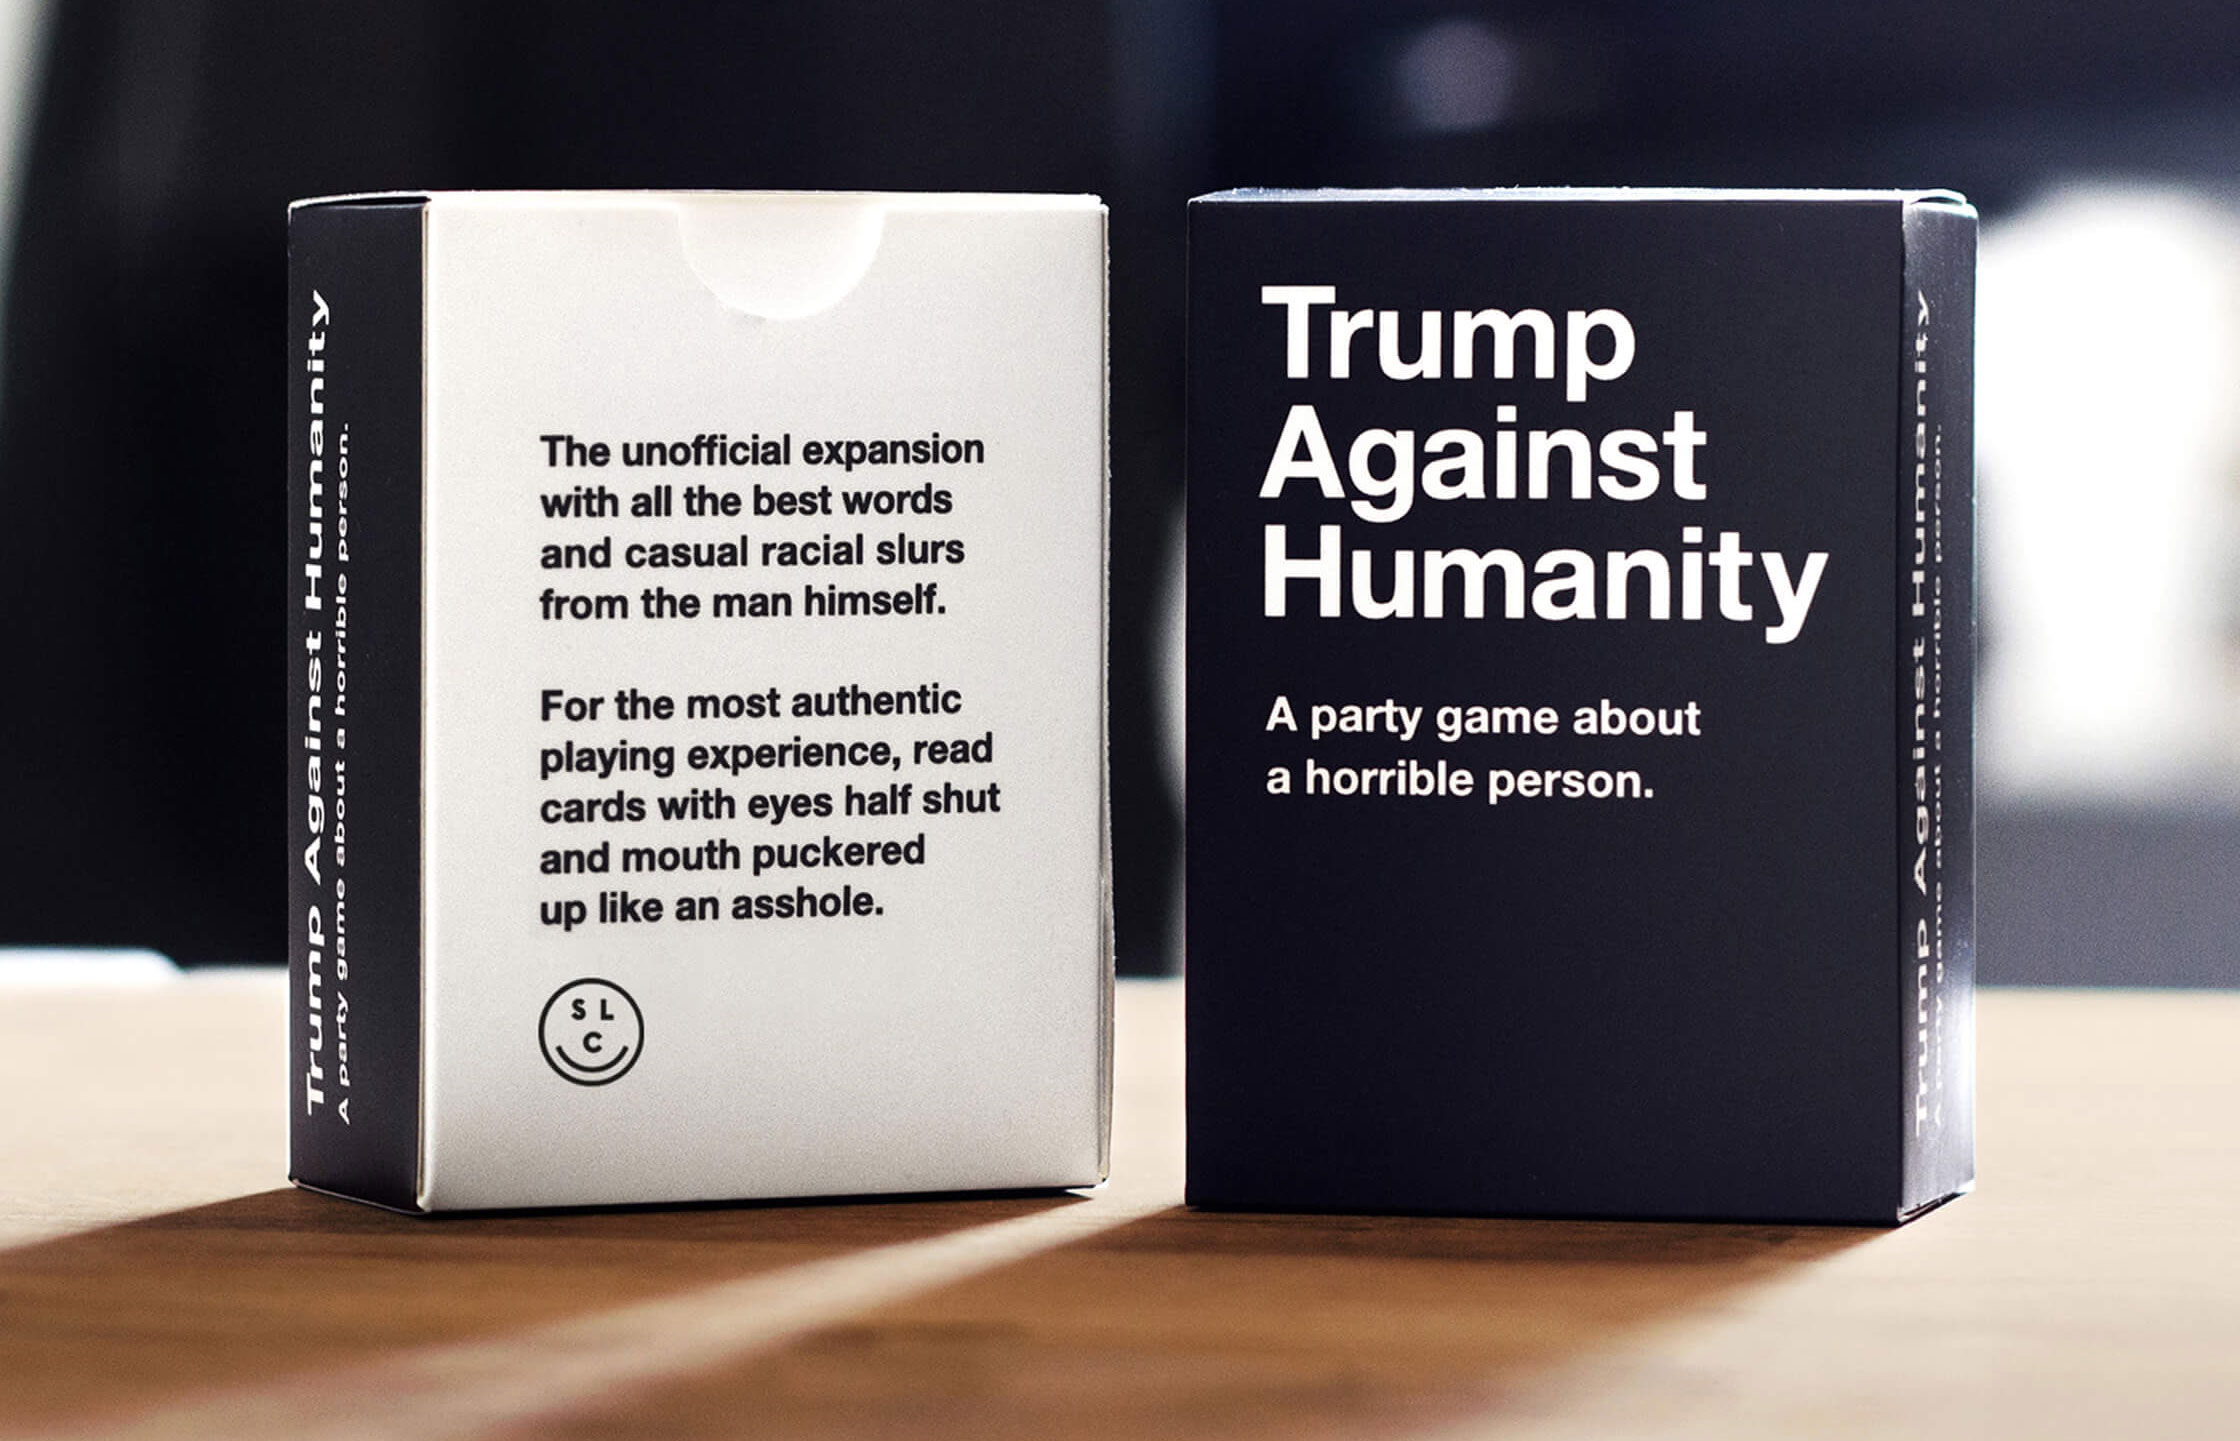 Blanc Manger Coco Love Cards Against Humanity And Hating On Donald Trump